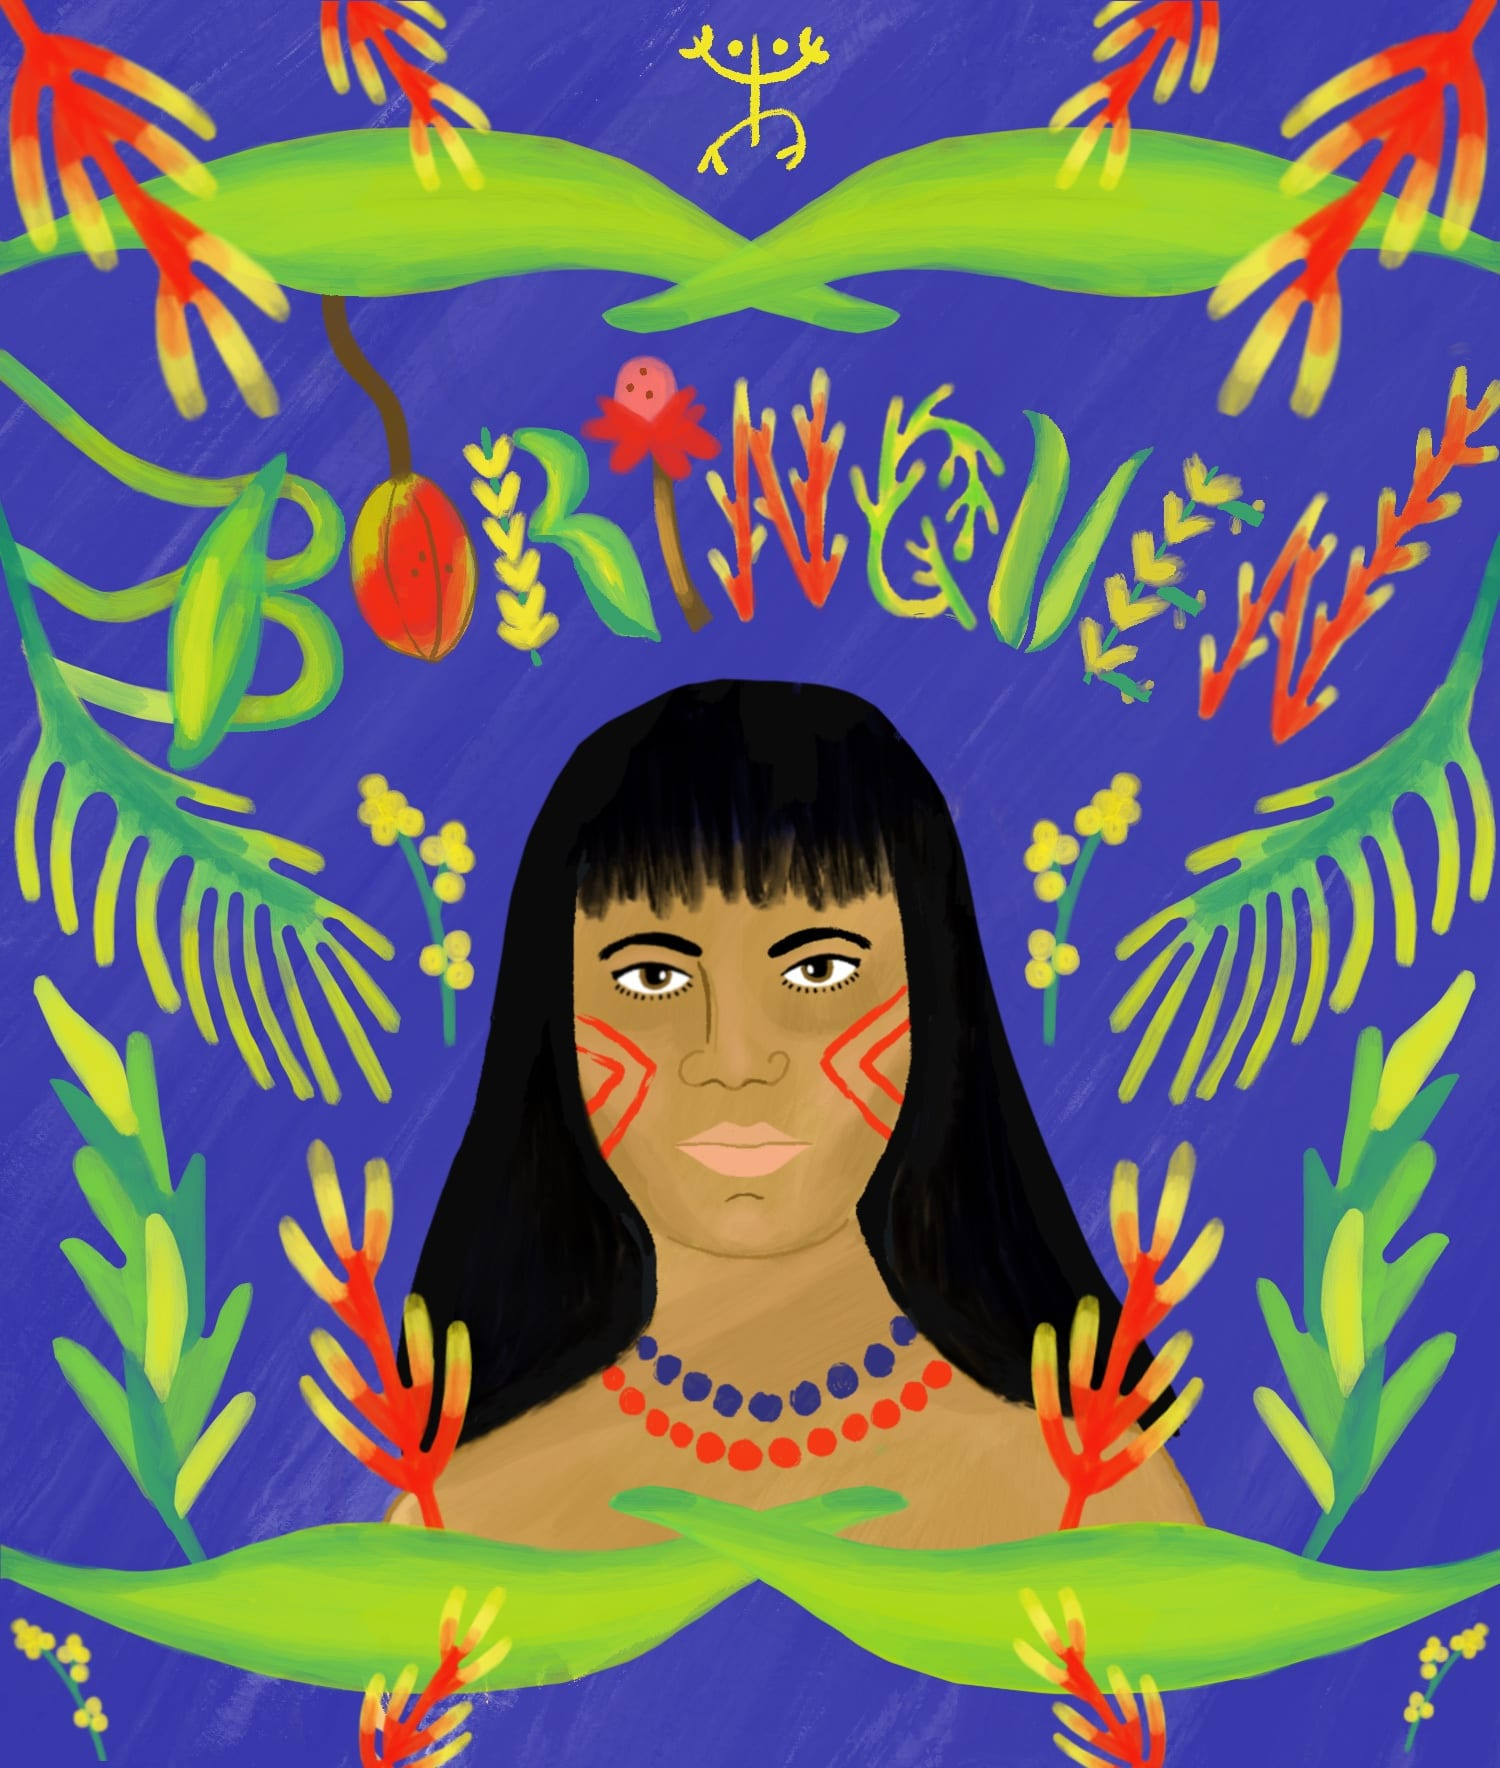 Latinx Illustrations and Lettering